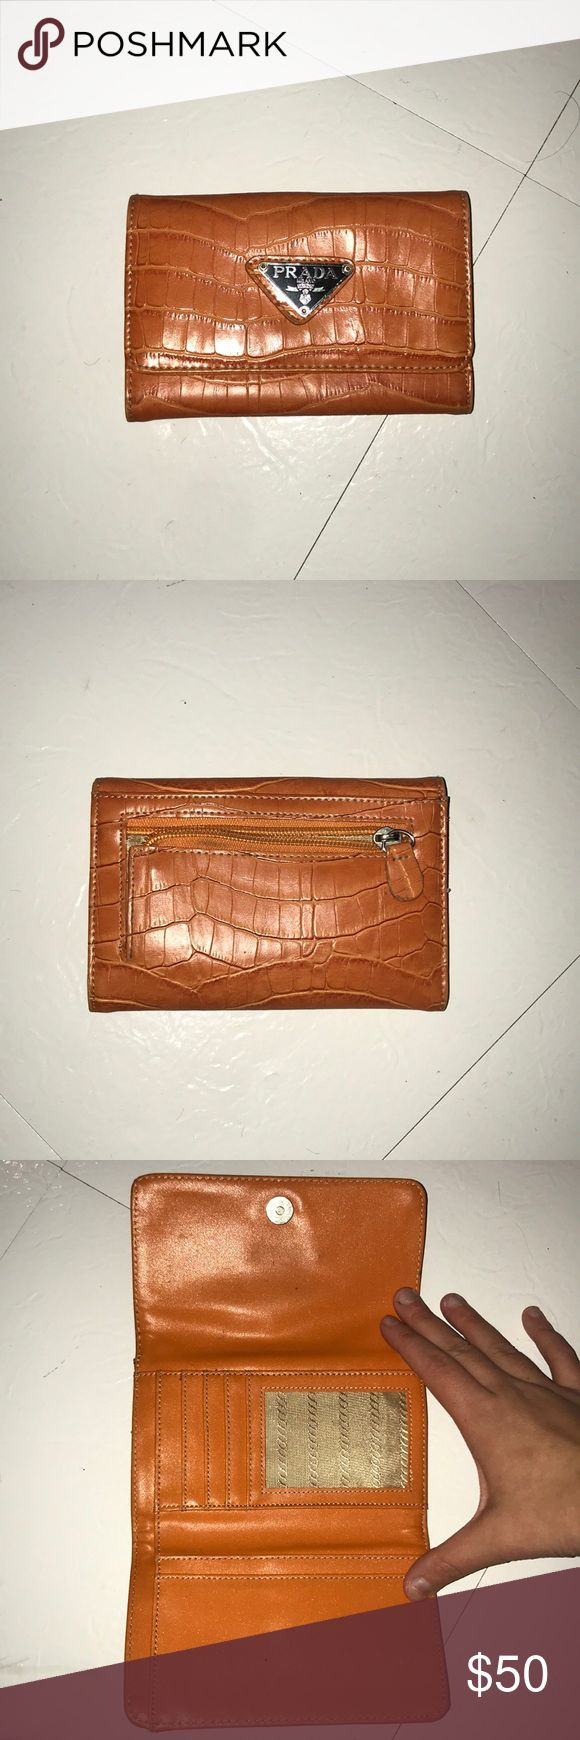 Orange Prada wallet There are a lot of compartments to store, gift cards, credit cards, ID, Coins, and cash Prada Bags Wallets